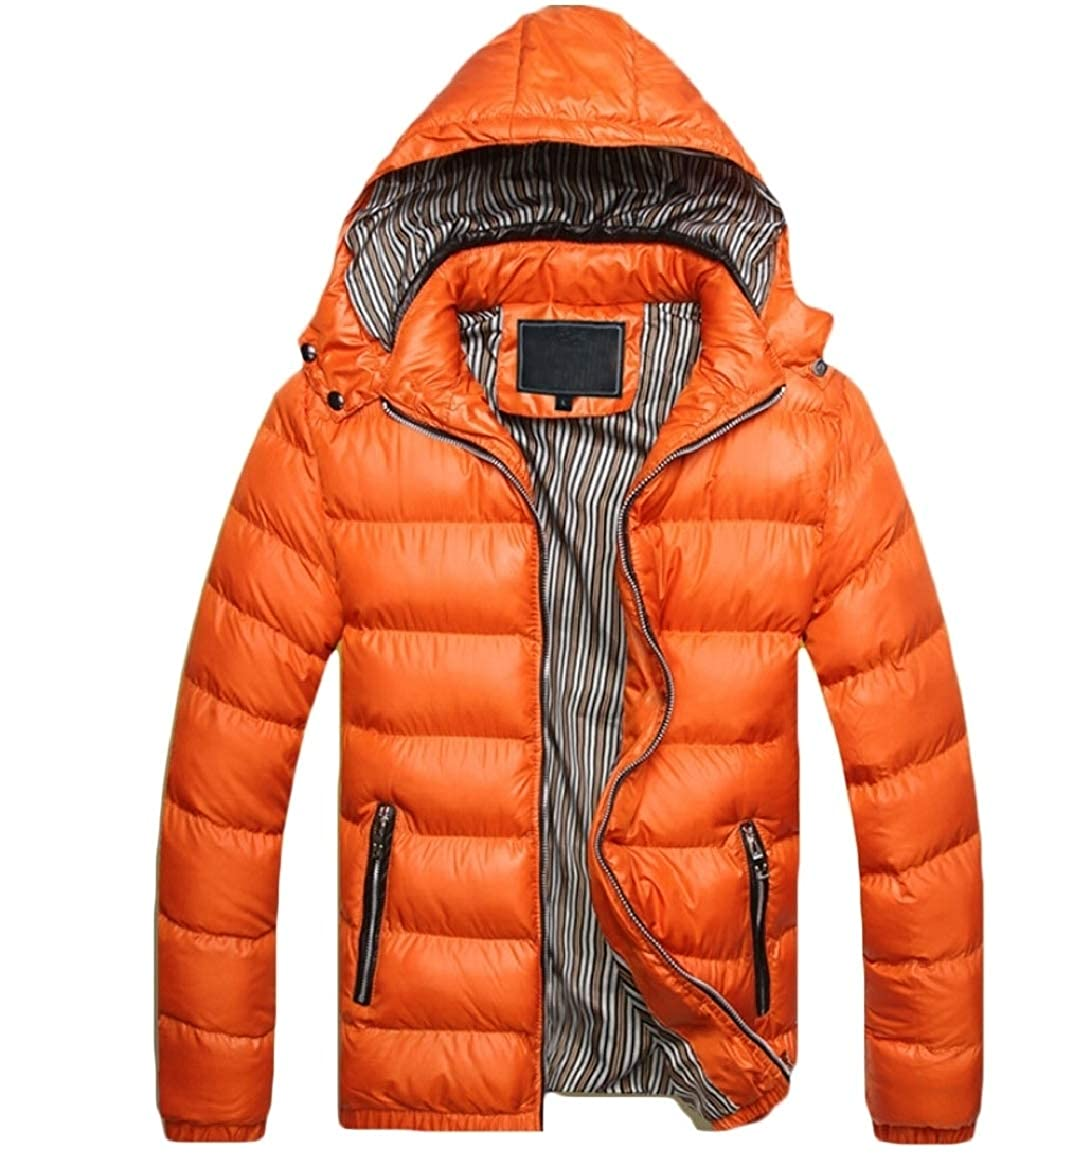 xiaohuoban Men Hooded Packable Winter Cotton Down Puffer Coat with Removable Hood